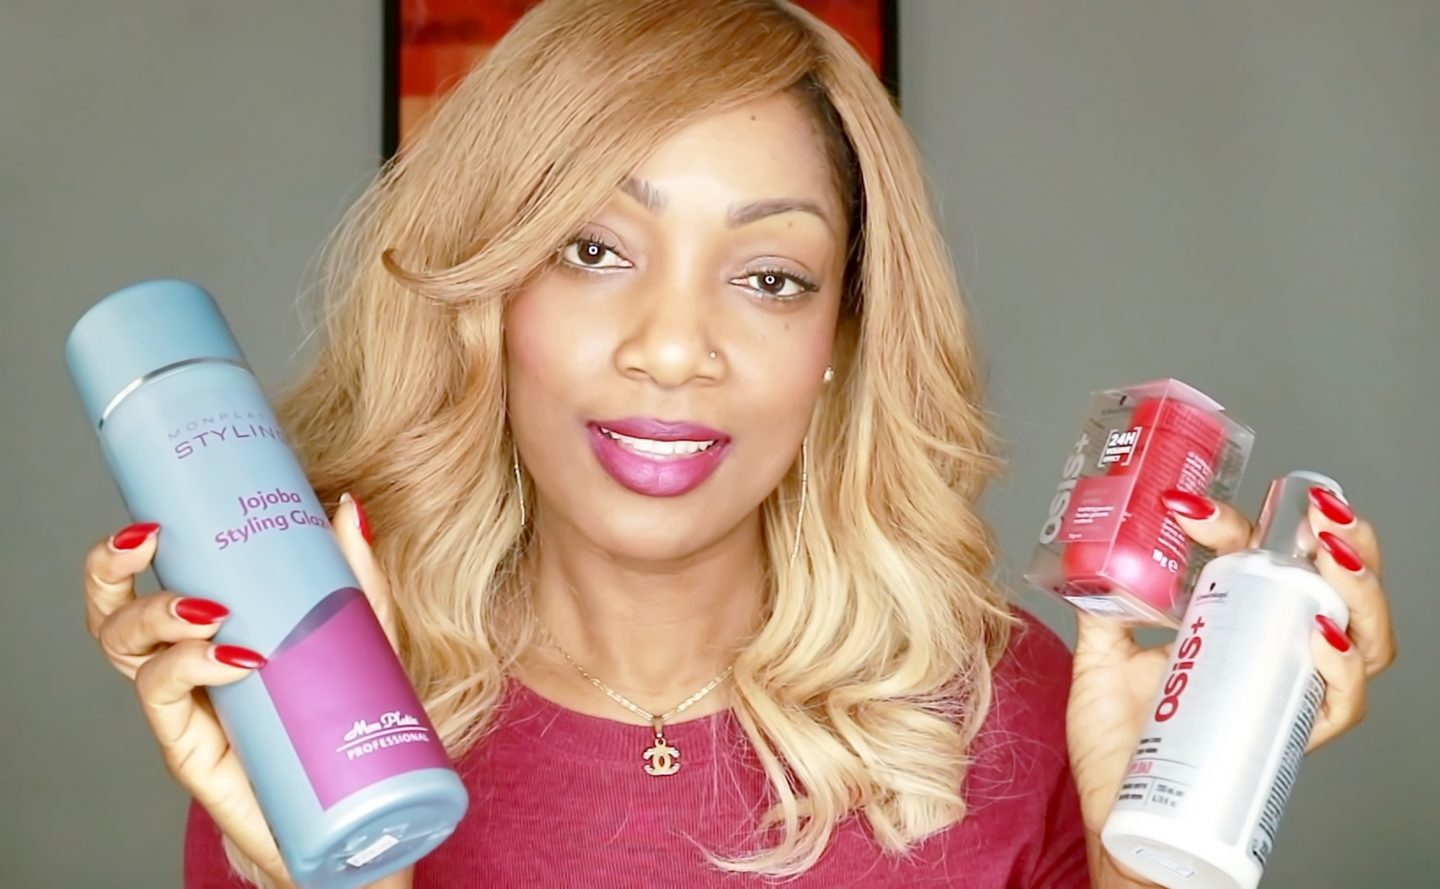 FAVORITE HAIR STYLING PRODUCTS / HOW TO USE THEM (video)